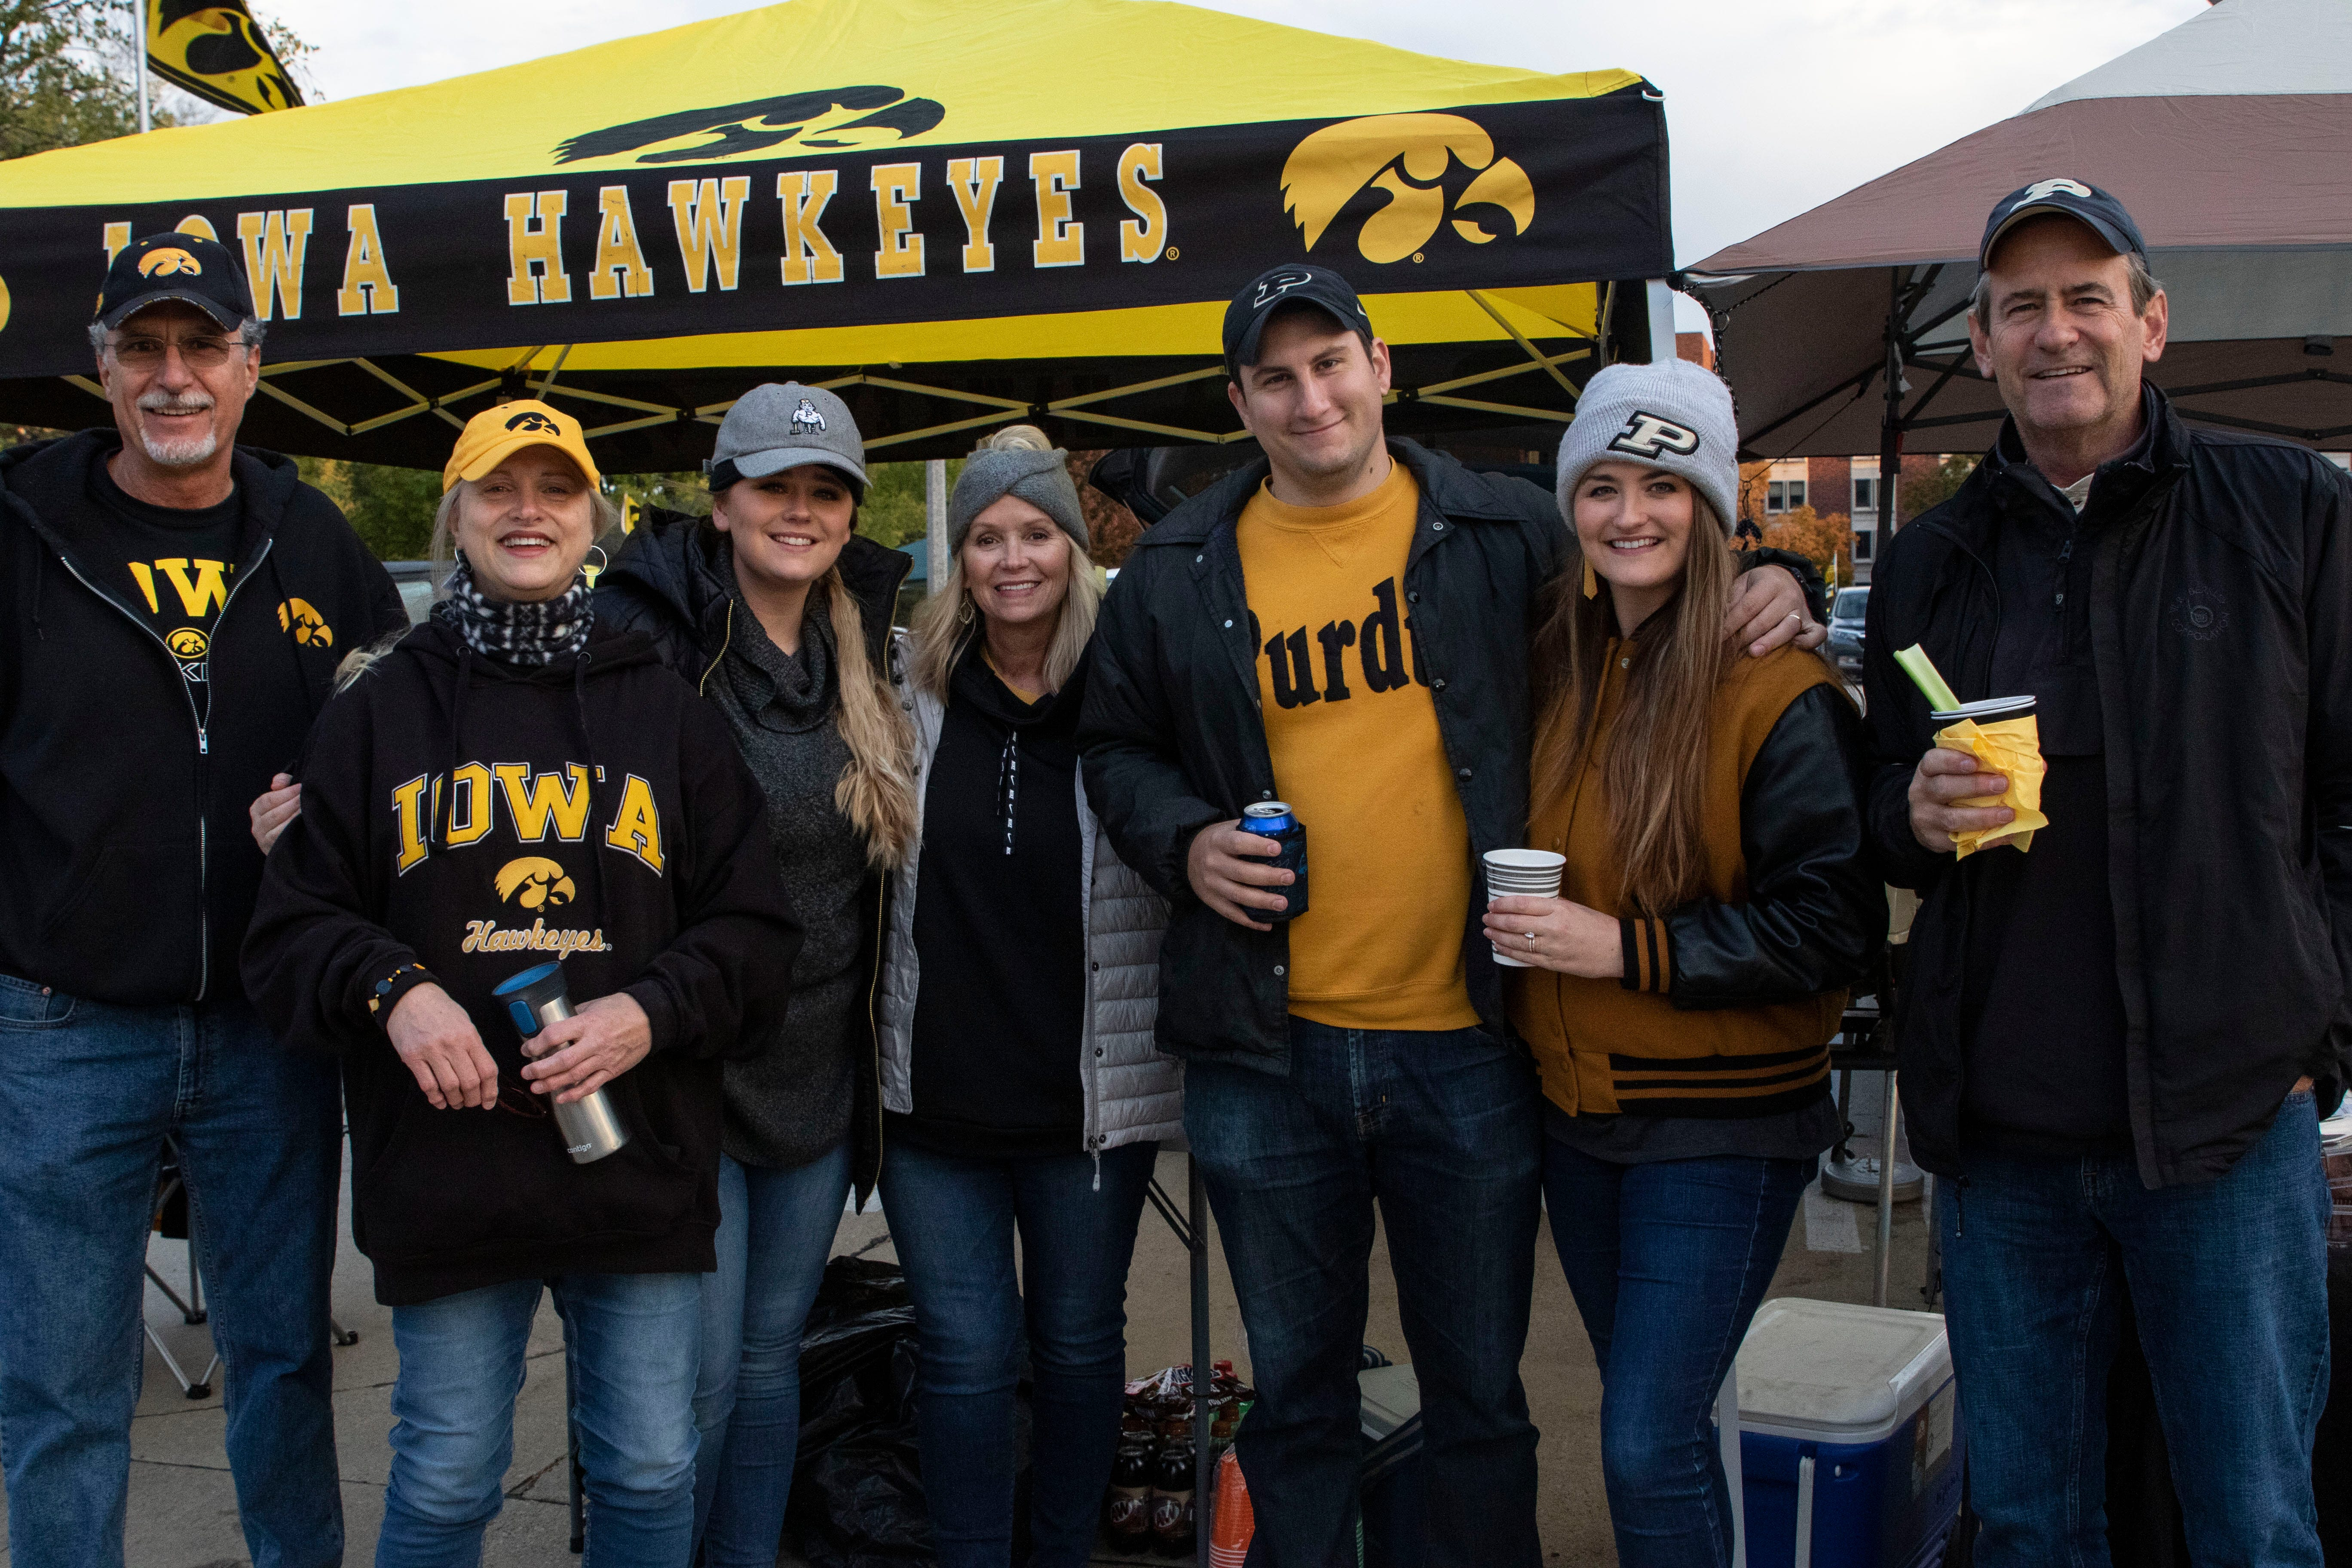 Iowa football: Photos of fans tailgating before Hawkeyes' game with Purdue